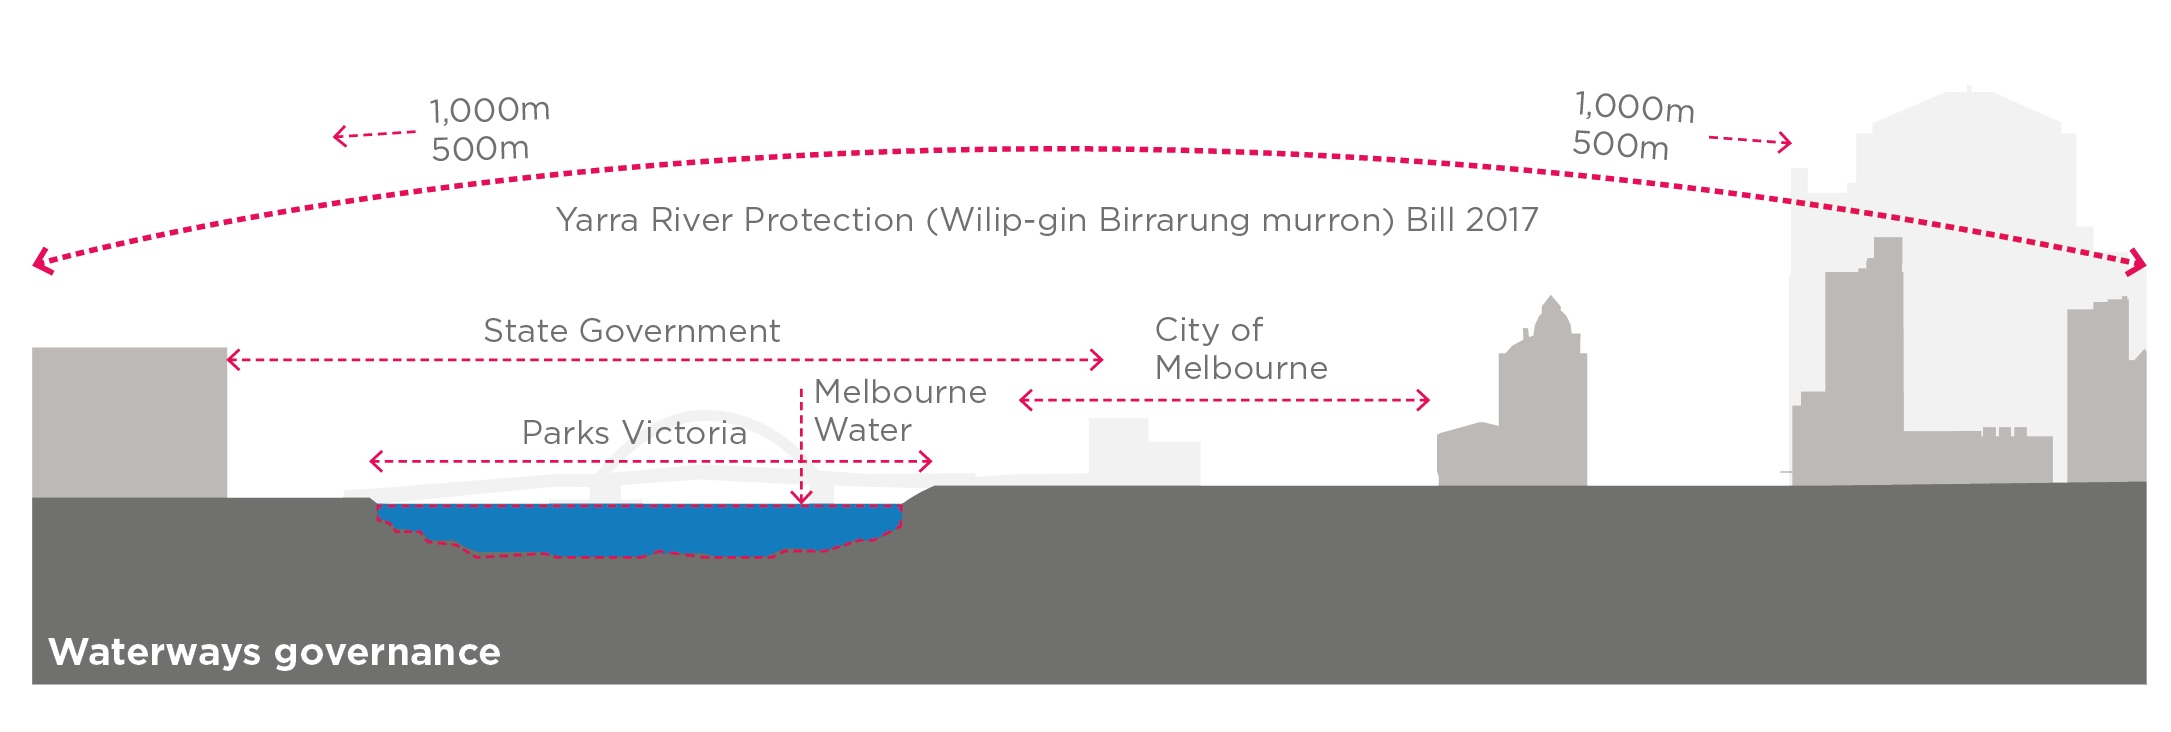 Waterways governance diagram